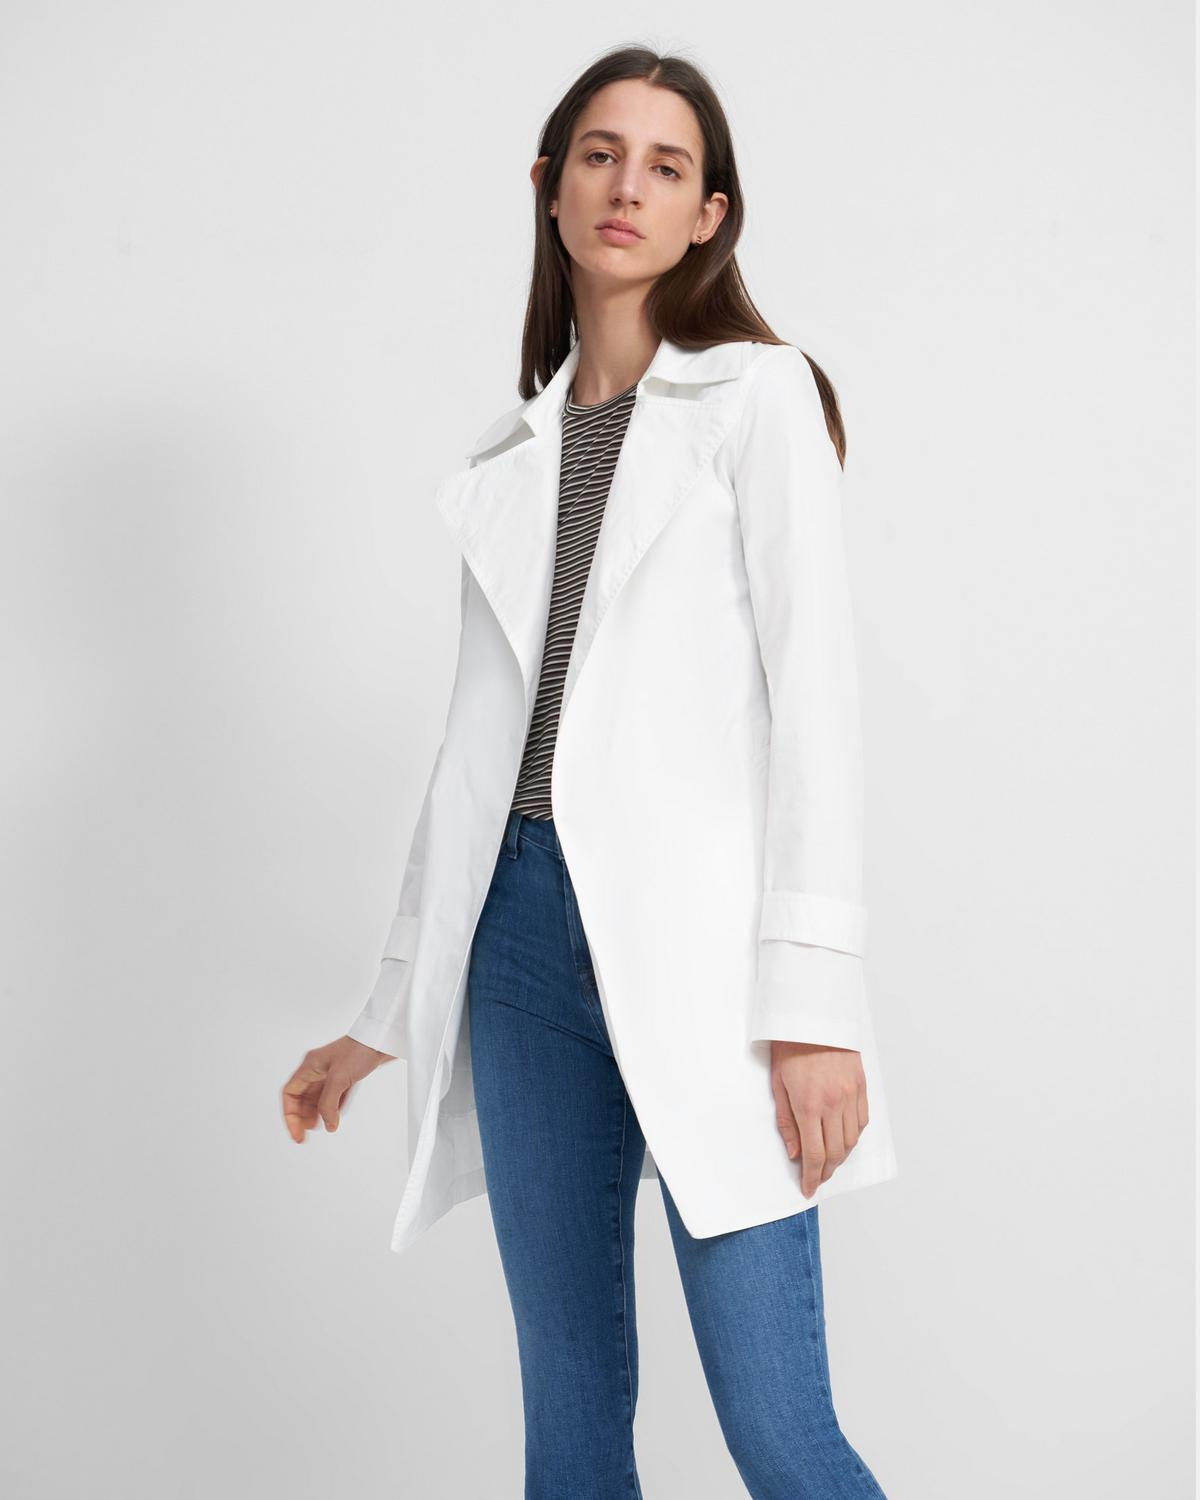 Oaklane Short Trench Coat in Garment Dyed Chino 0 - click to view larger image